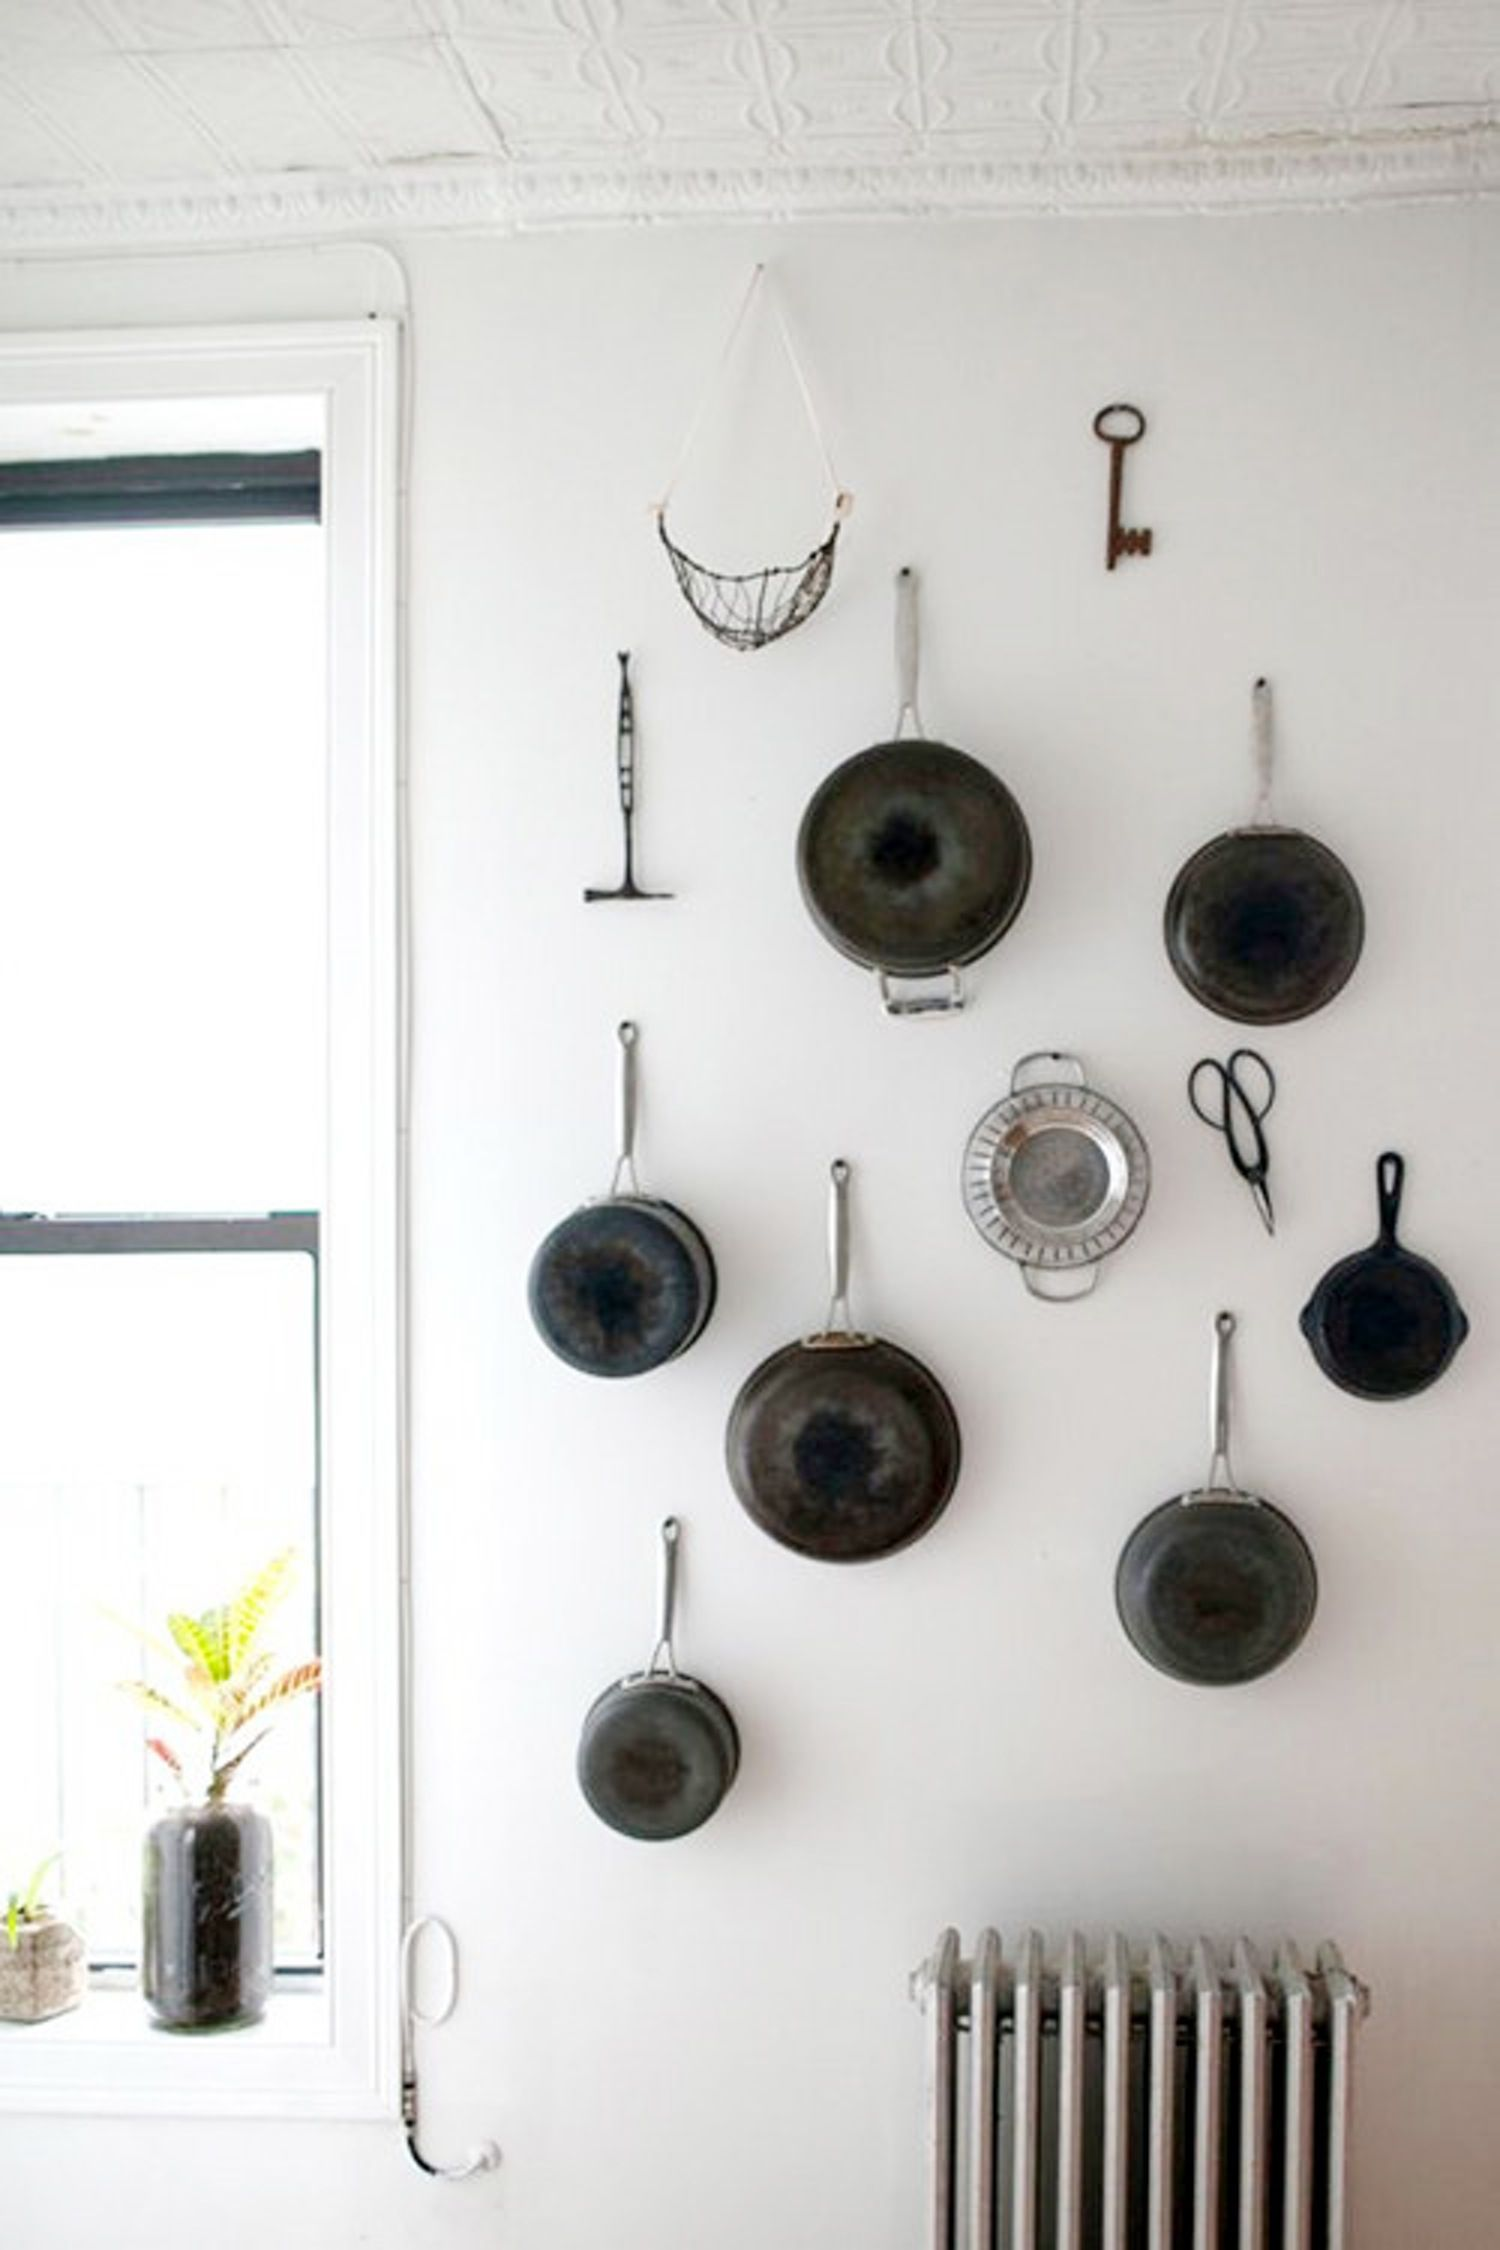 Look! A Wall of Pots & Tools in the Kitchen